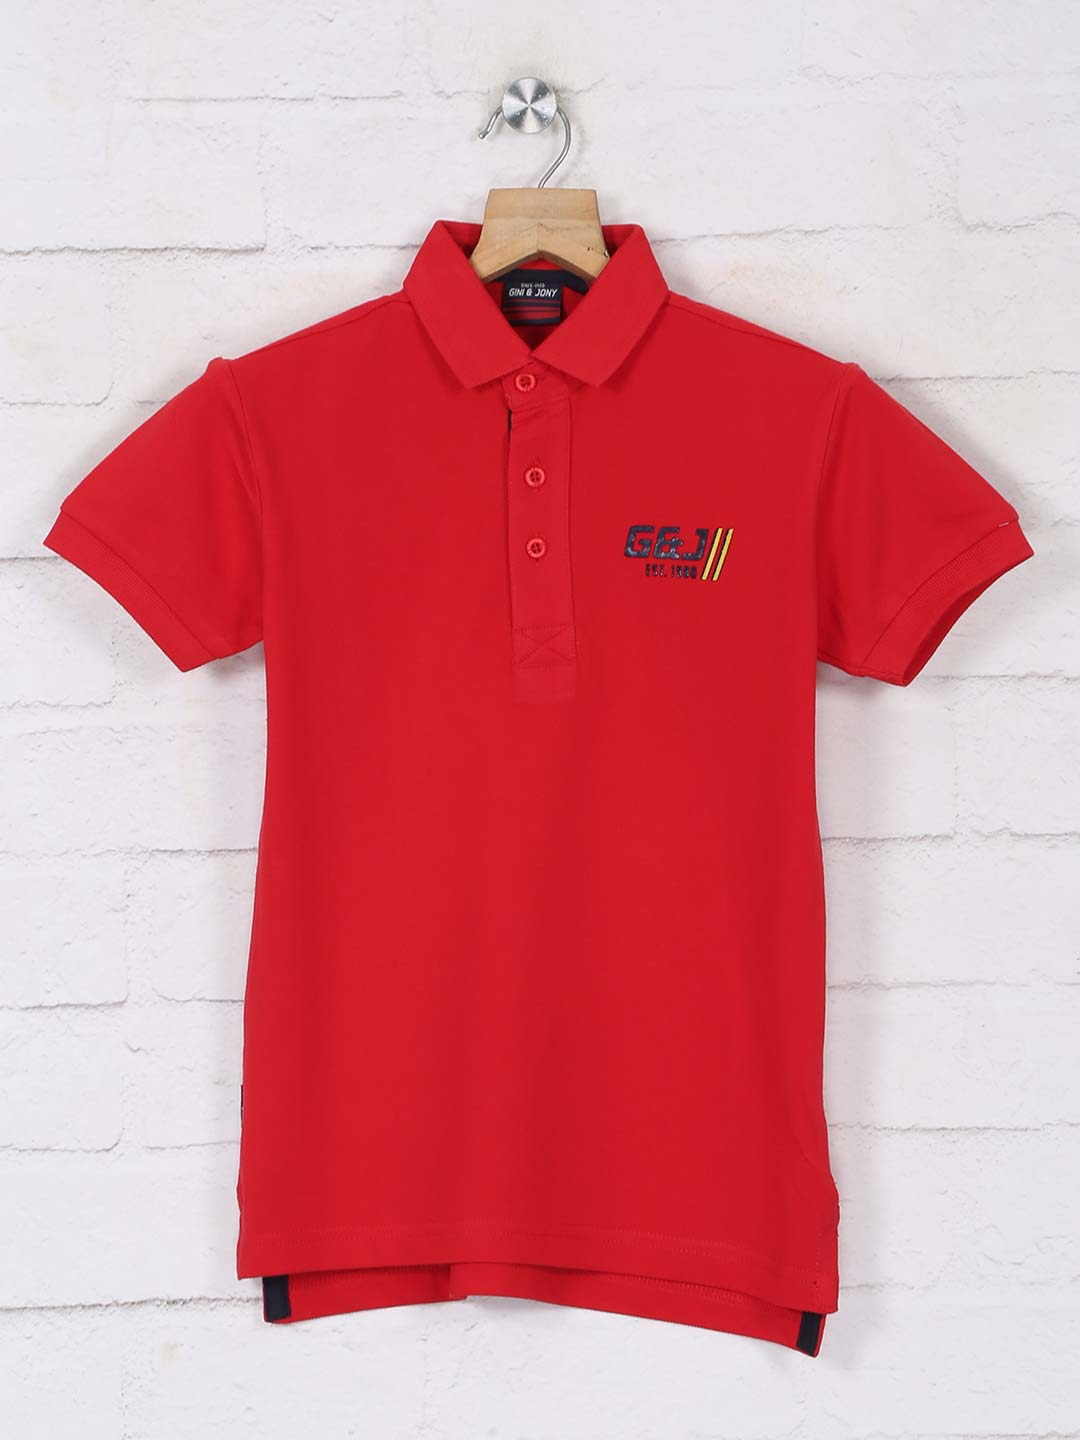 Gini & jony red solid cotton casual boys polo neck t-shirt?imgeng=w_400